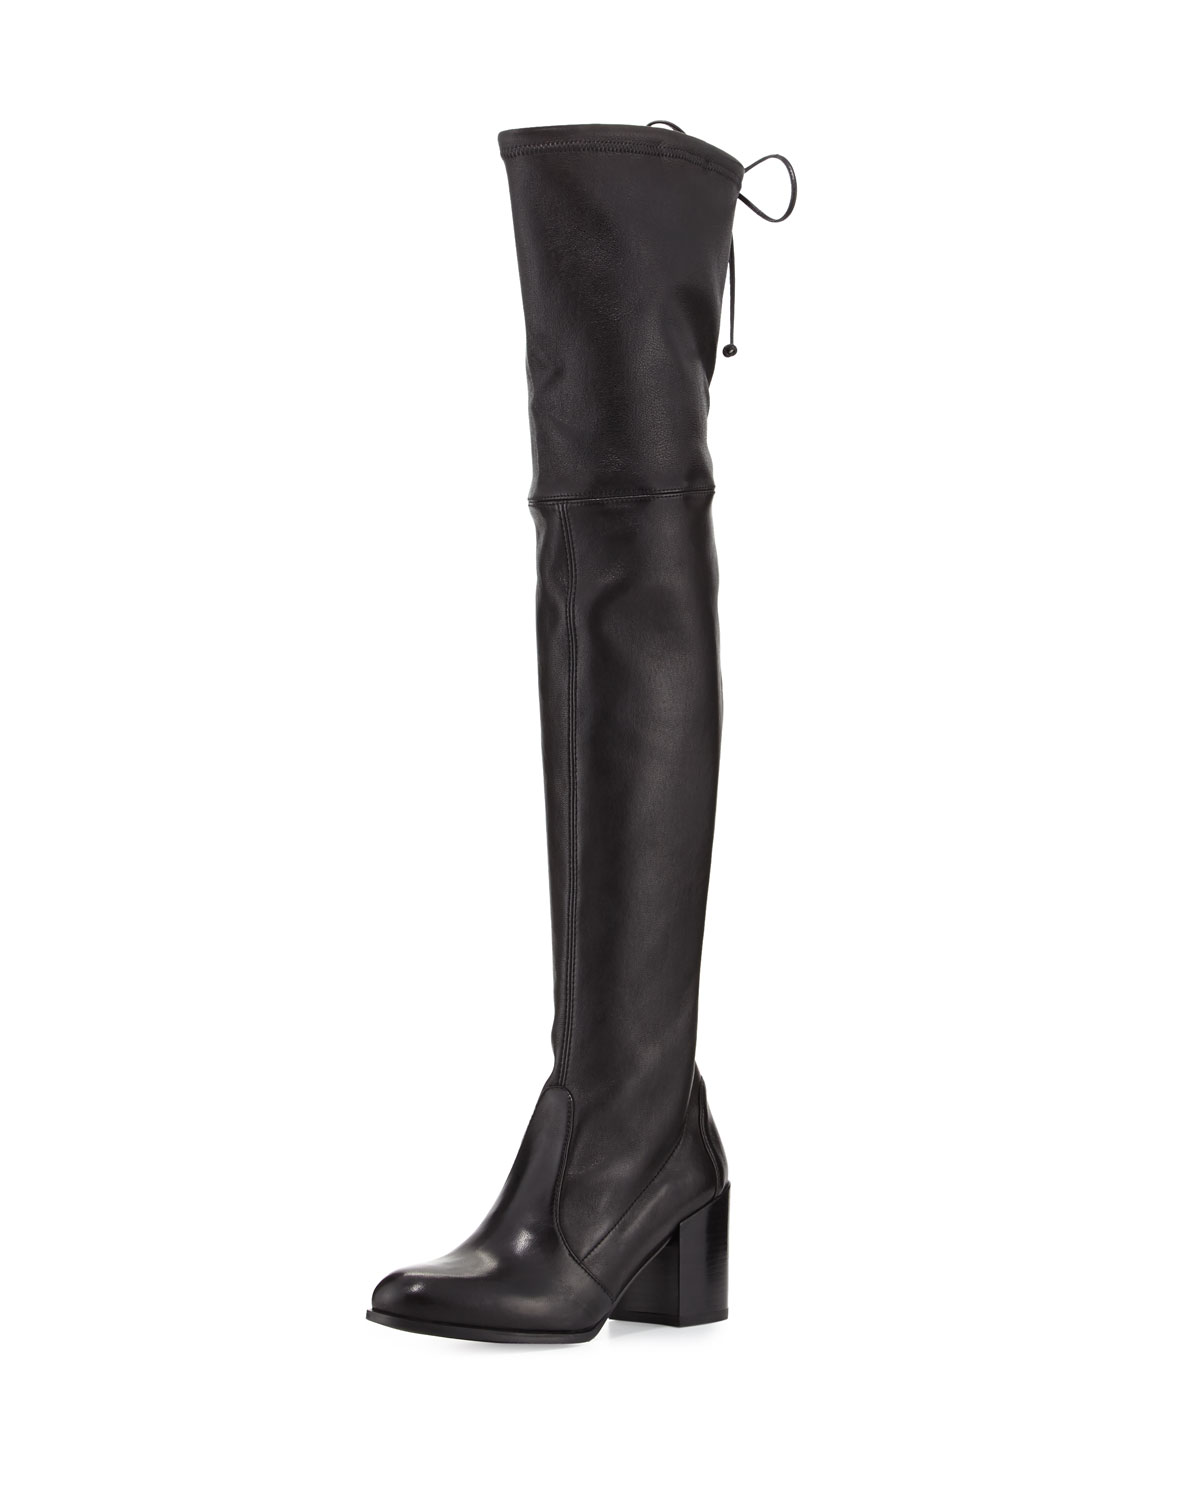 eb6274110d3 Stuart Weitzman Tieland Leather Over-the-Knee Boot